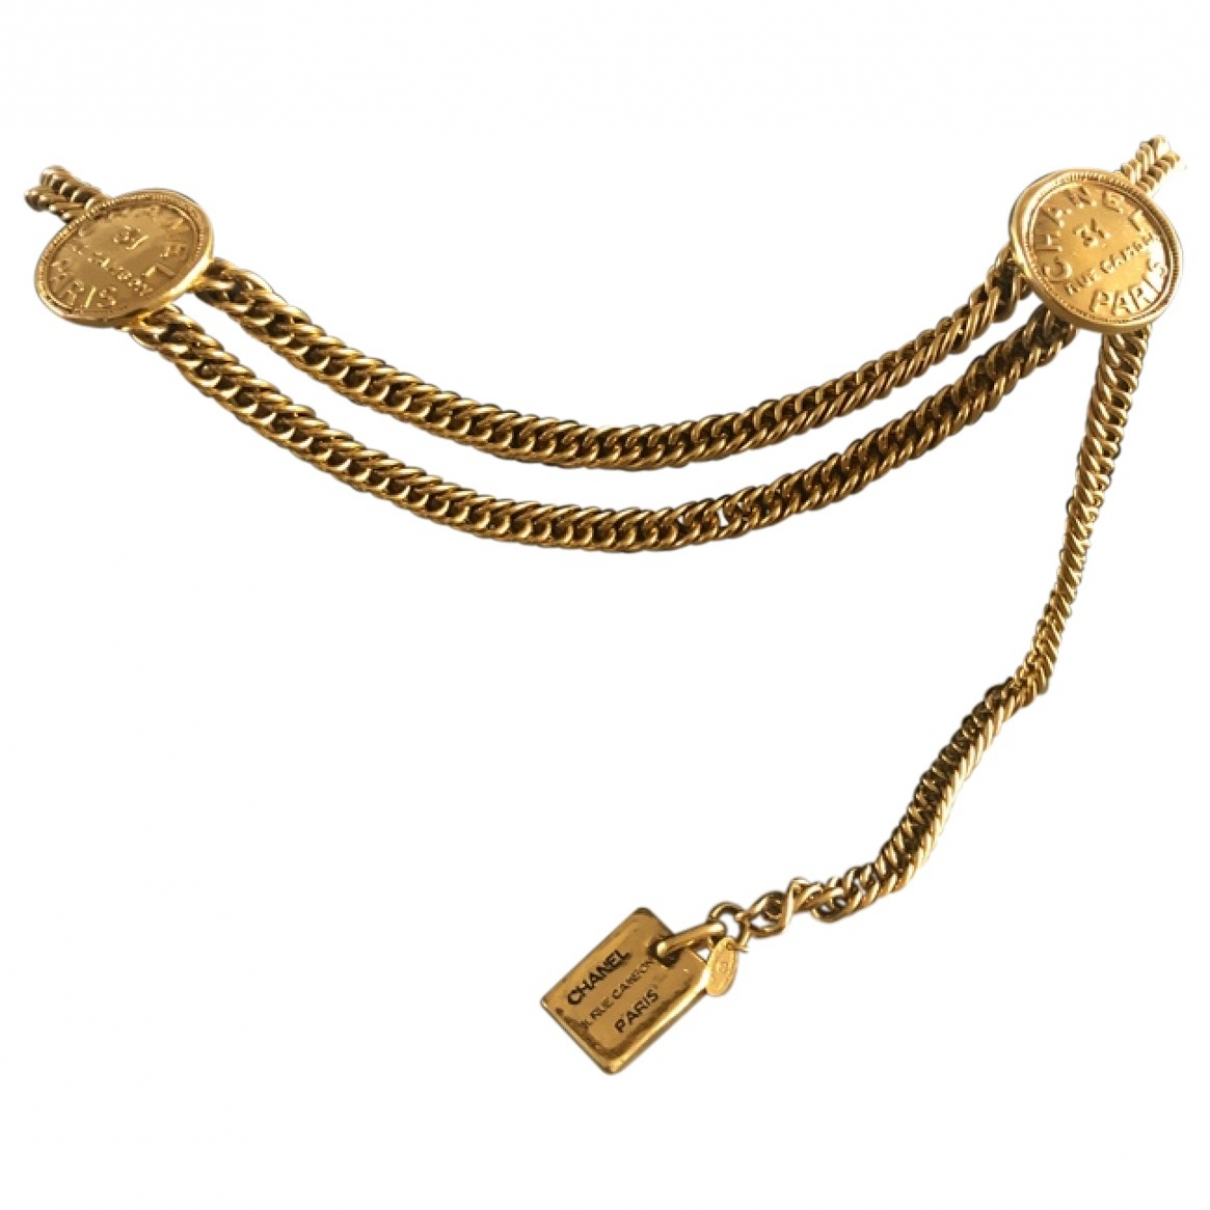 Chanel \N Gold Chain belt for Women 85 cm